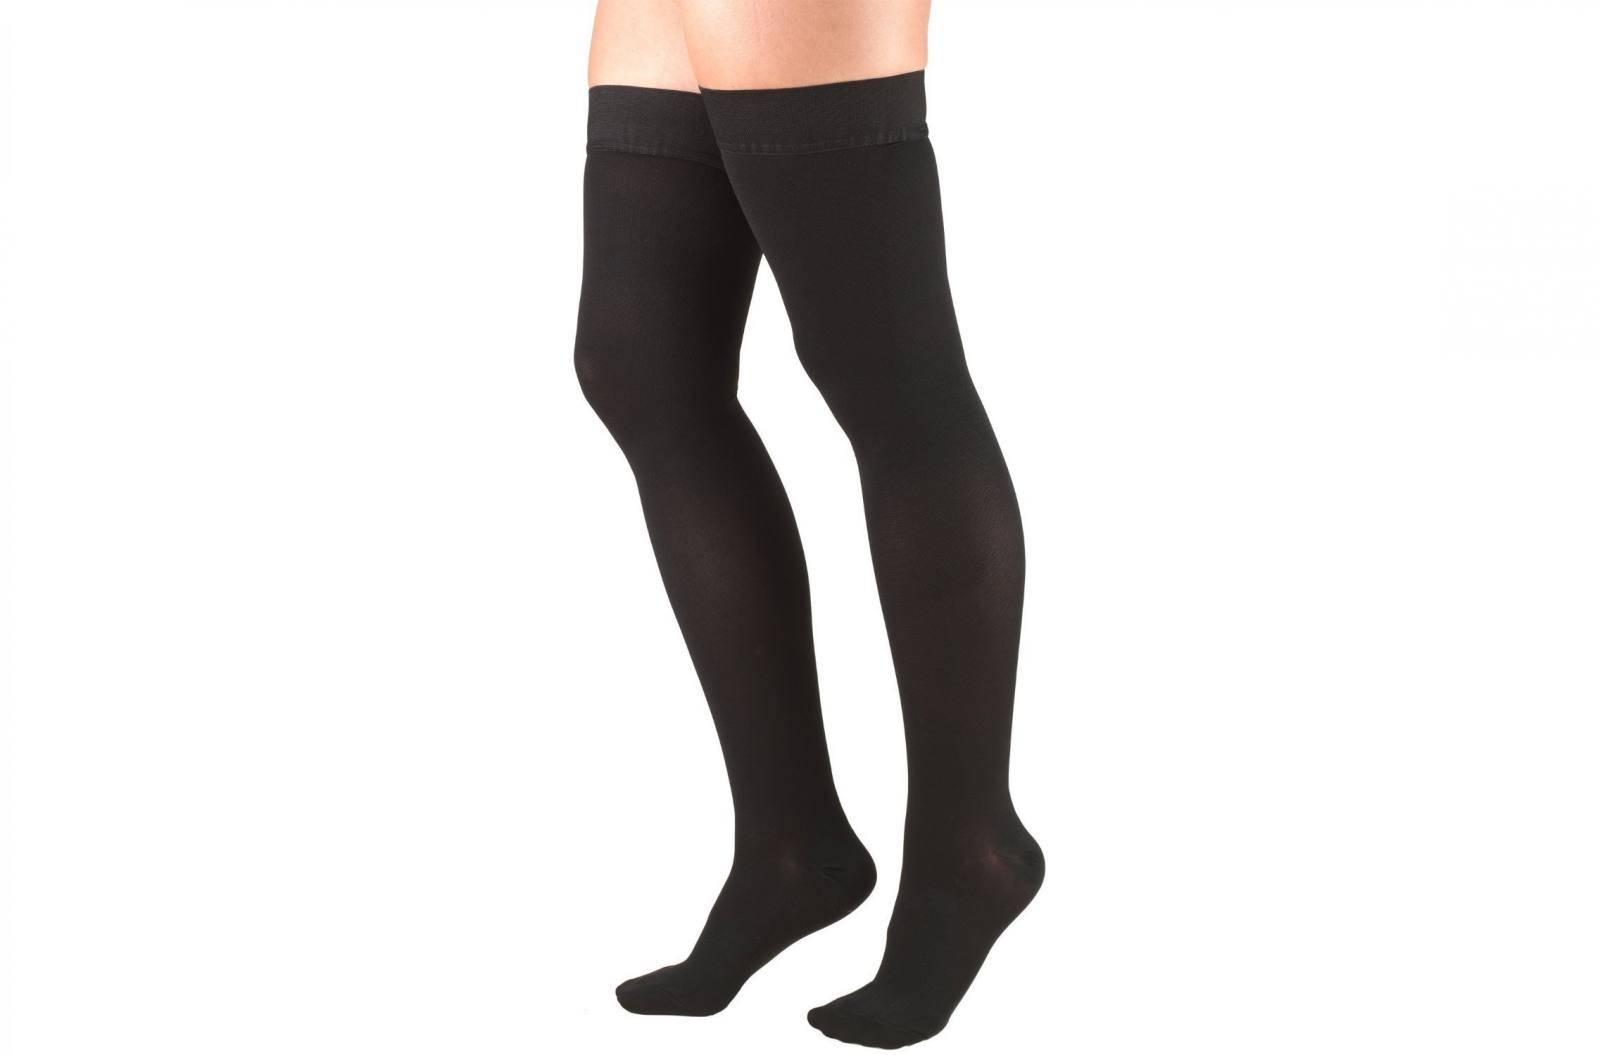 d43456cc6aa Truform 8867 20-30 MMHG THIGH HIGH CLOSED TOE STOCK UNISEX from Cimarron  Medical Services